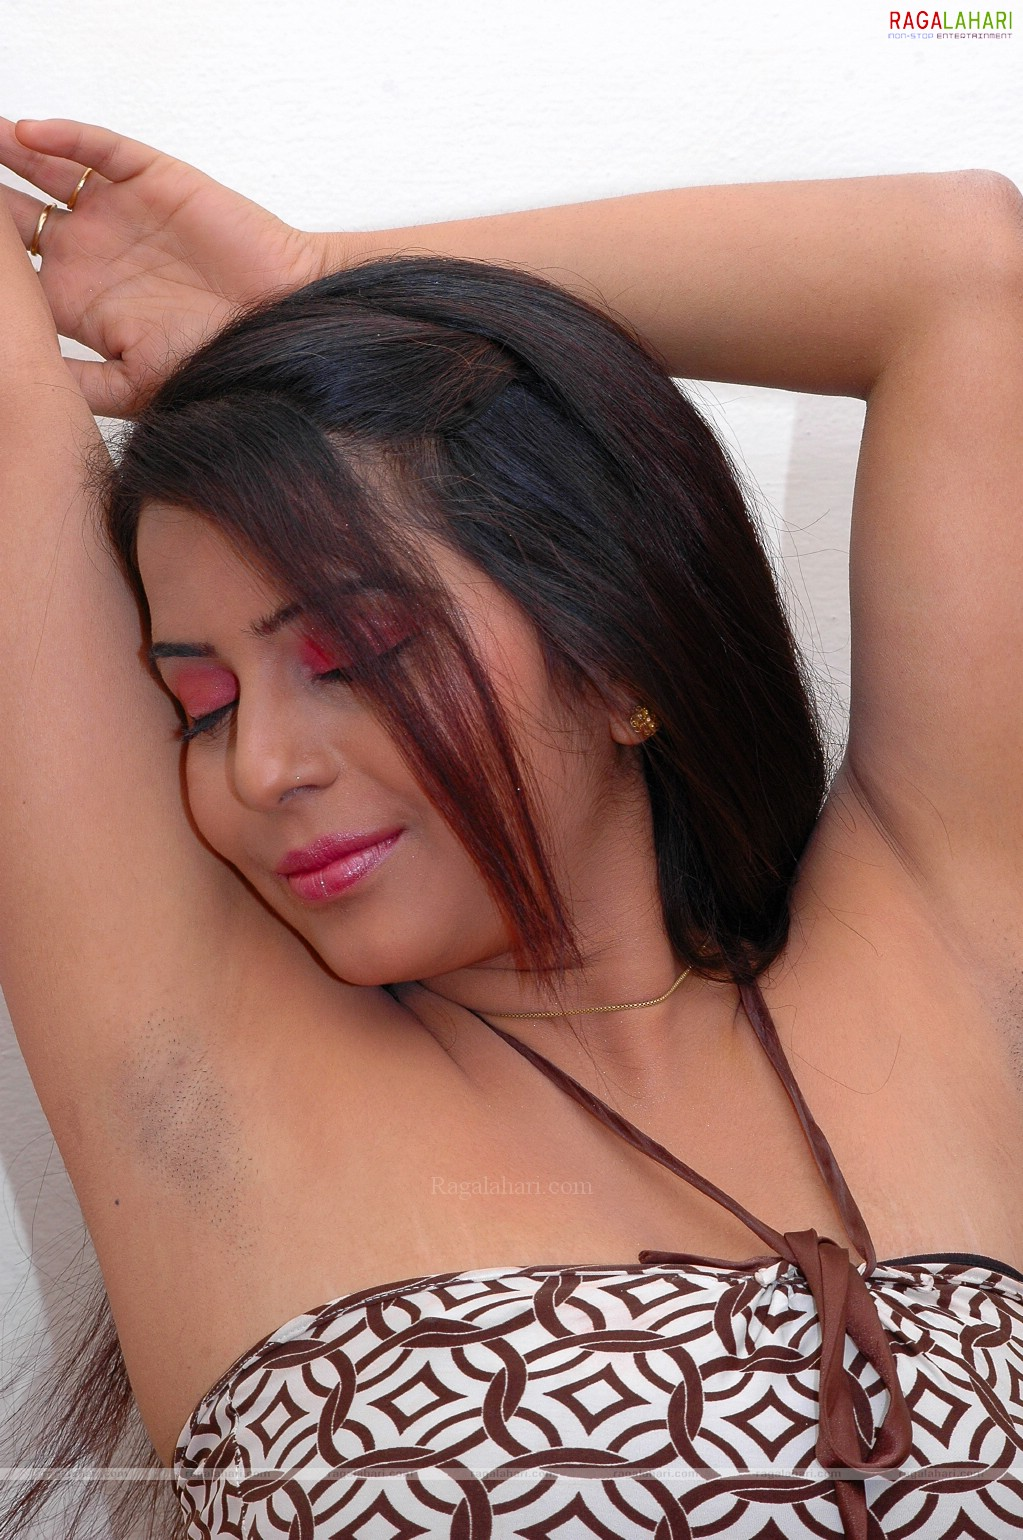 Hairy nude armpit in desi college